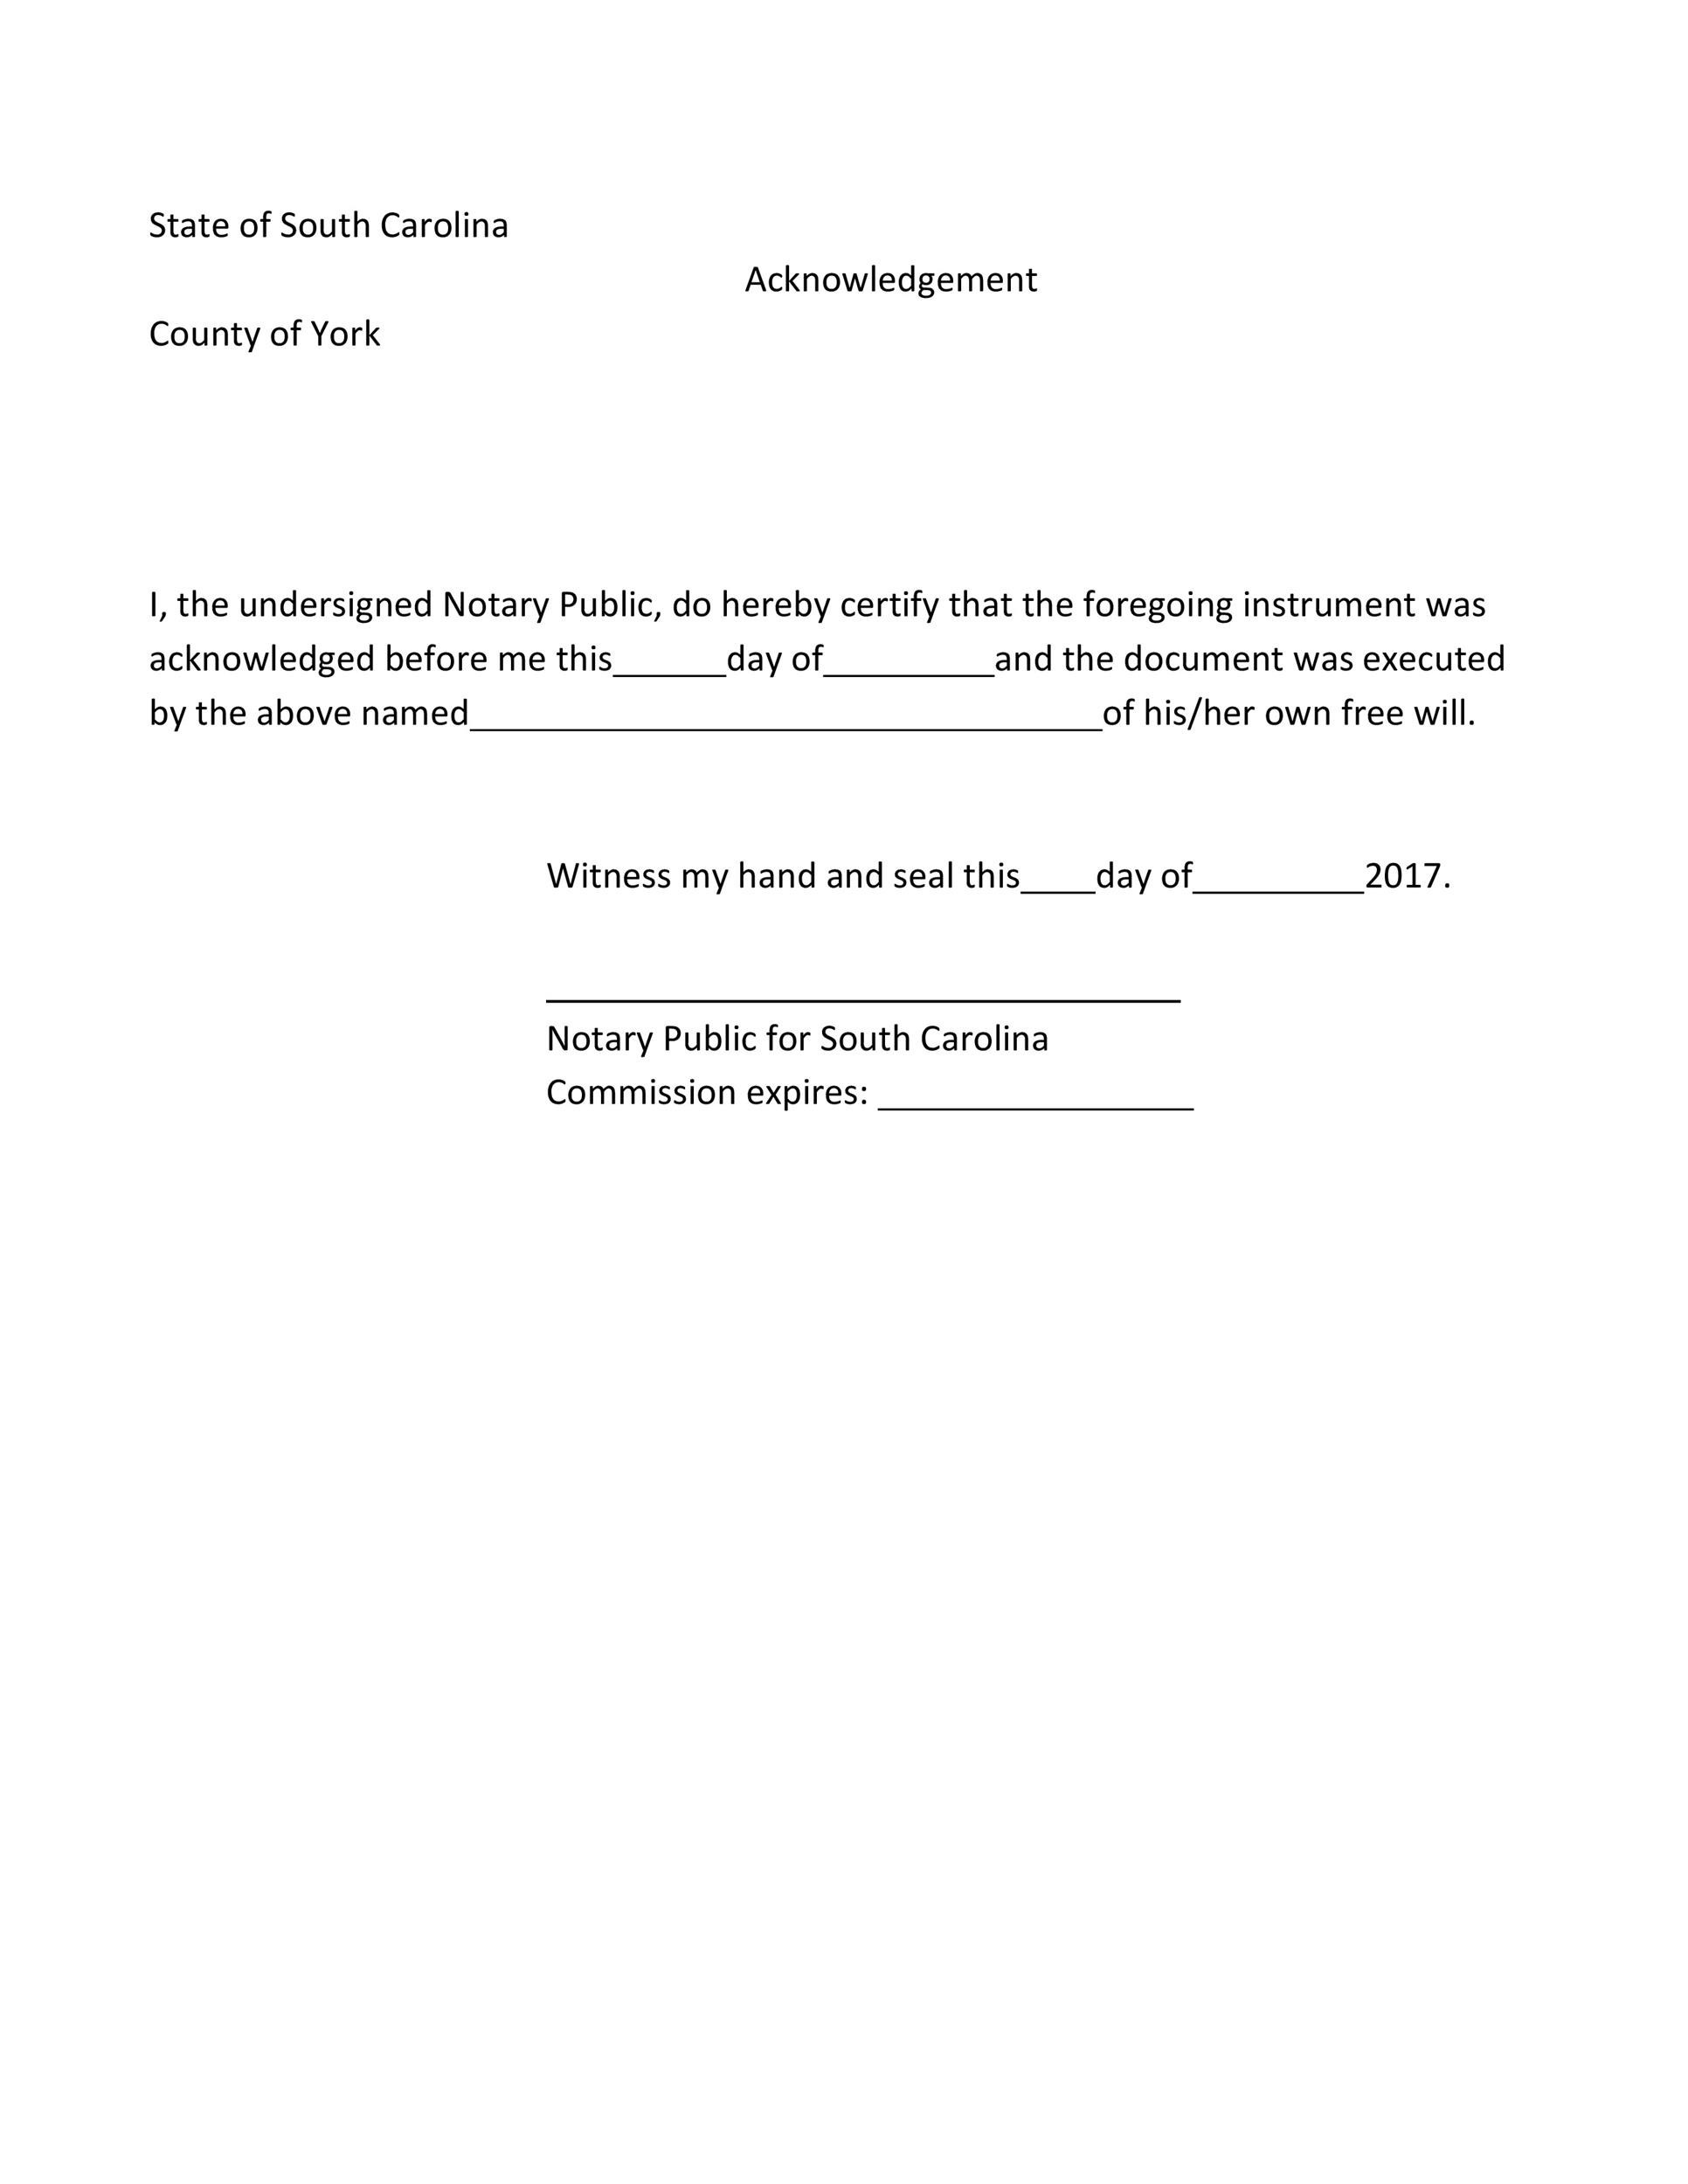 Free notary acknowledgement 42